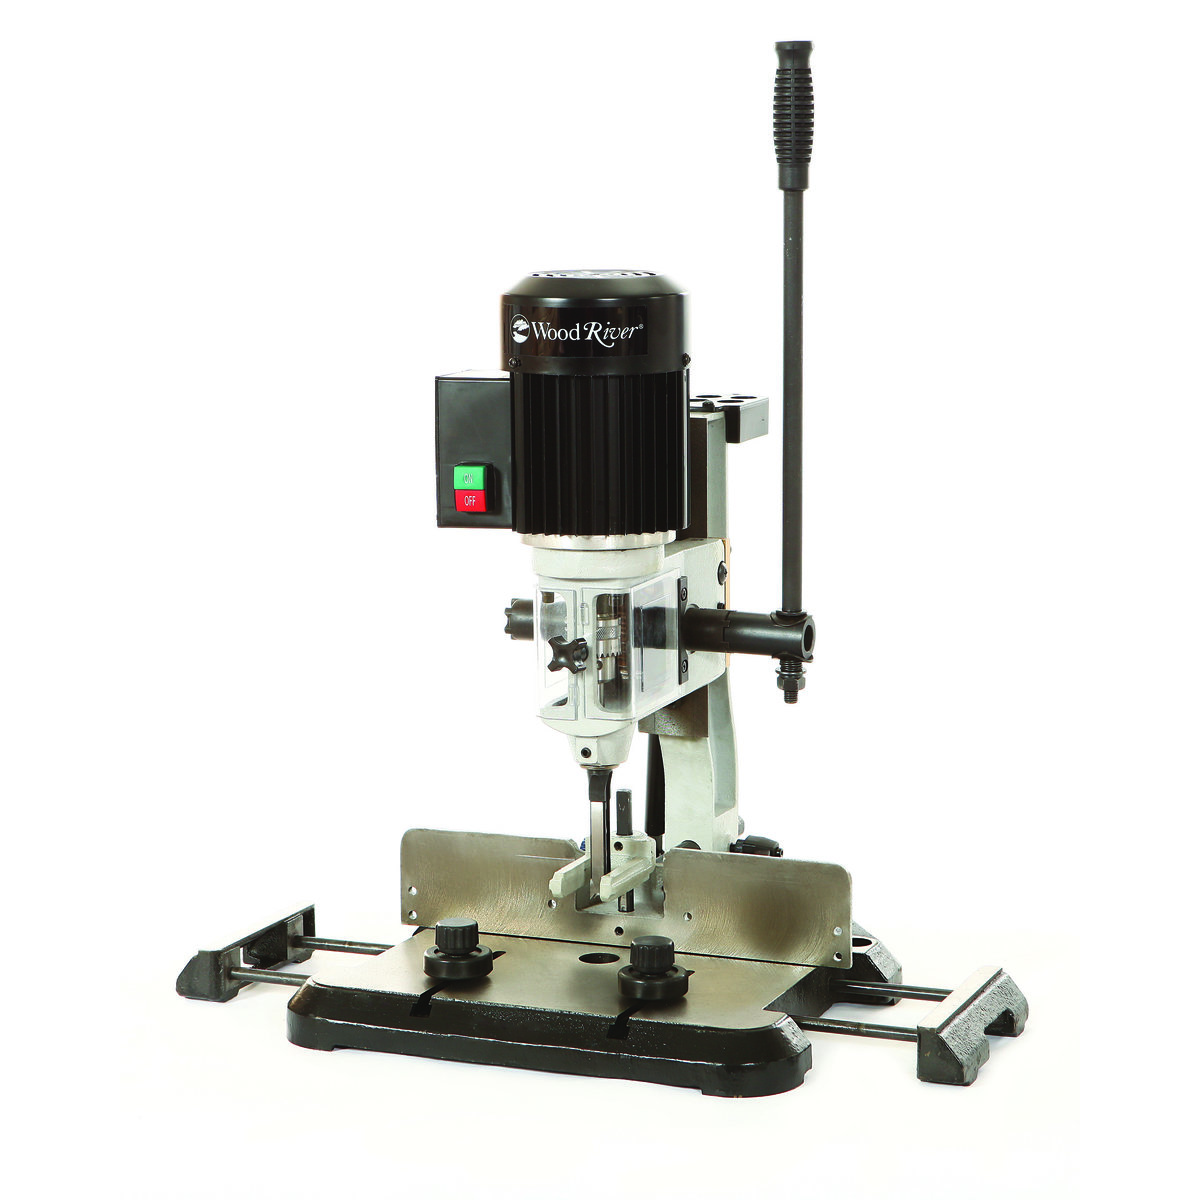 WoodRiver - Benchtop Mortiser with Chisels & Bits